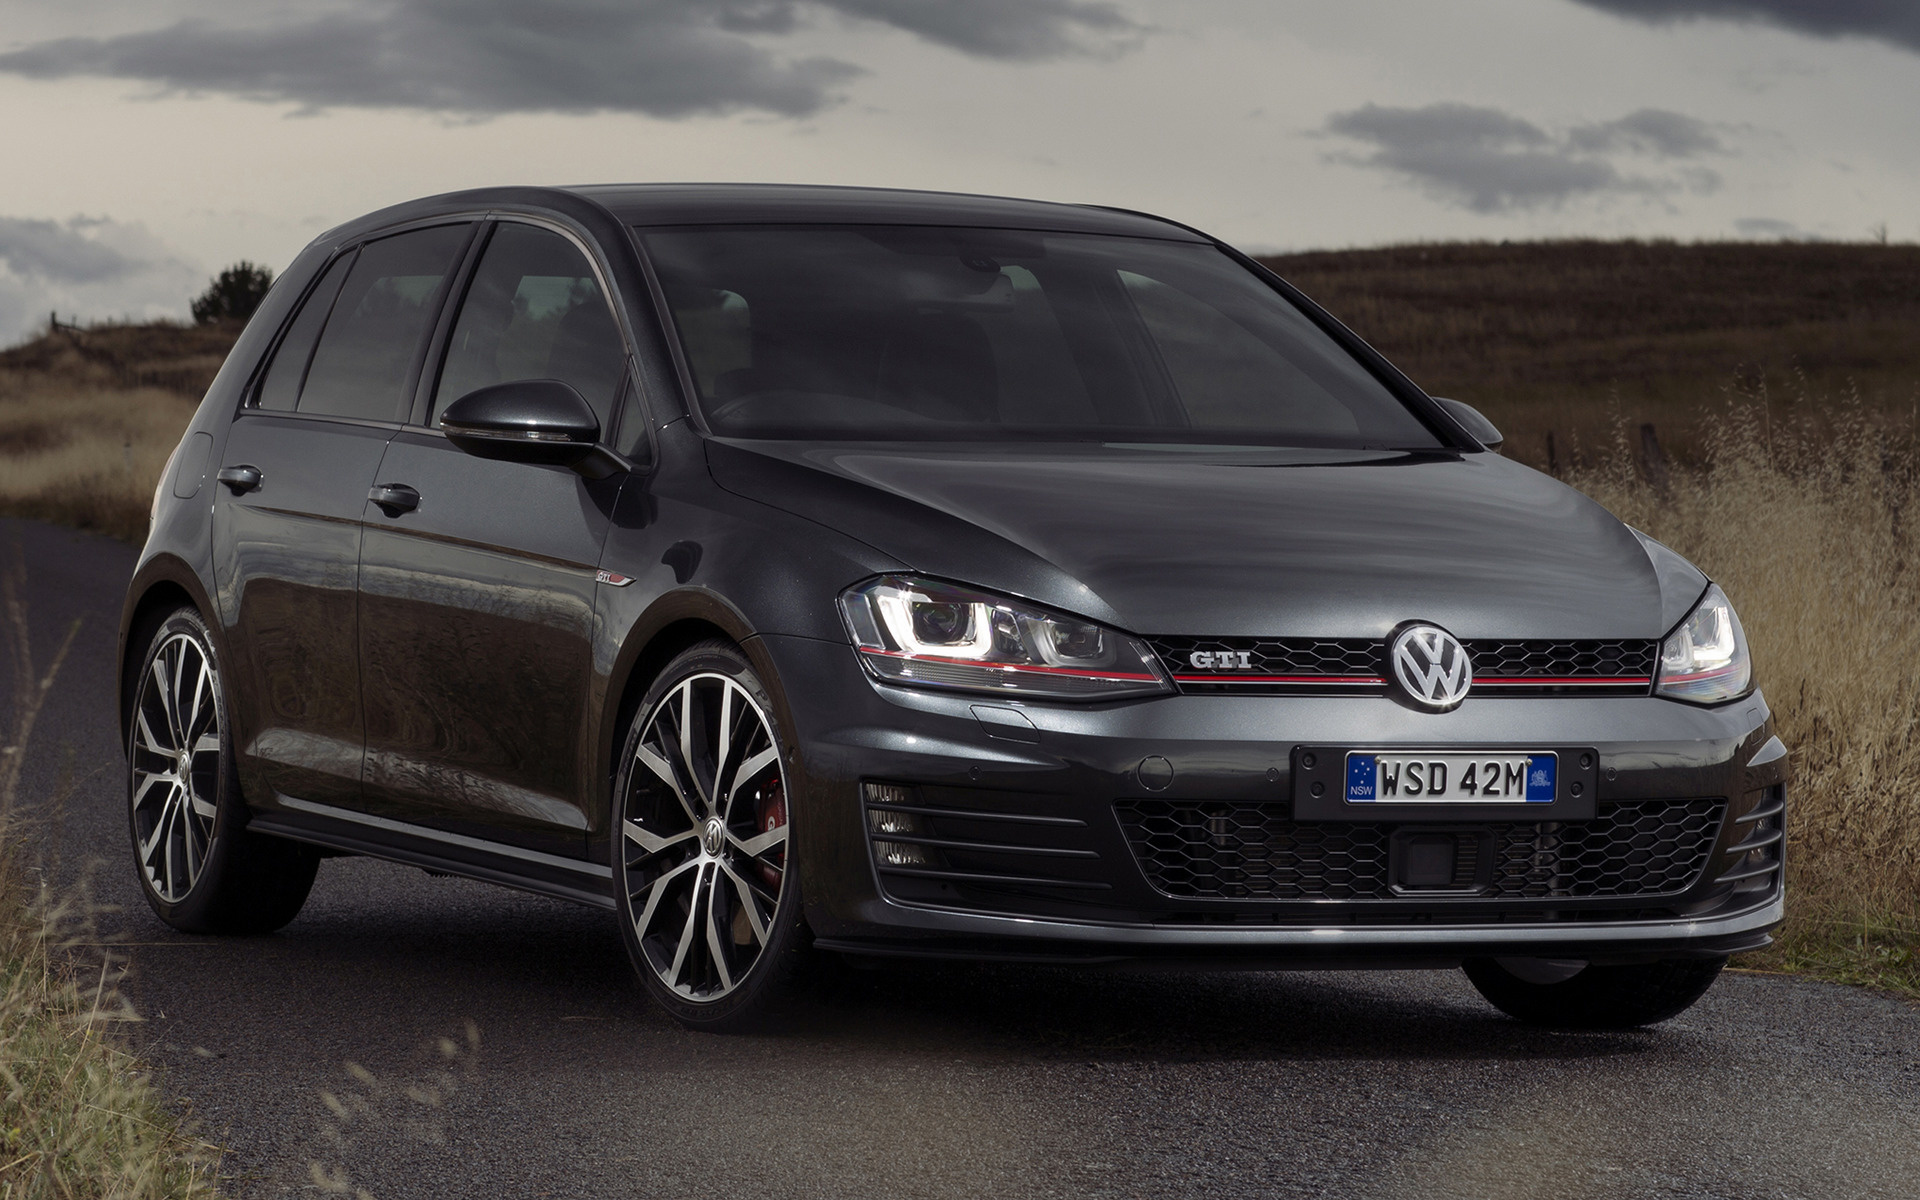 2014 Volkswagen Golf GTI Performance 5 Door AU